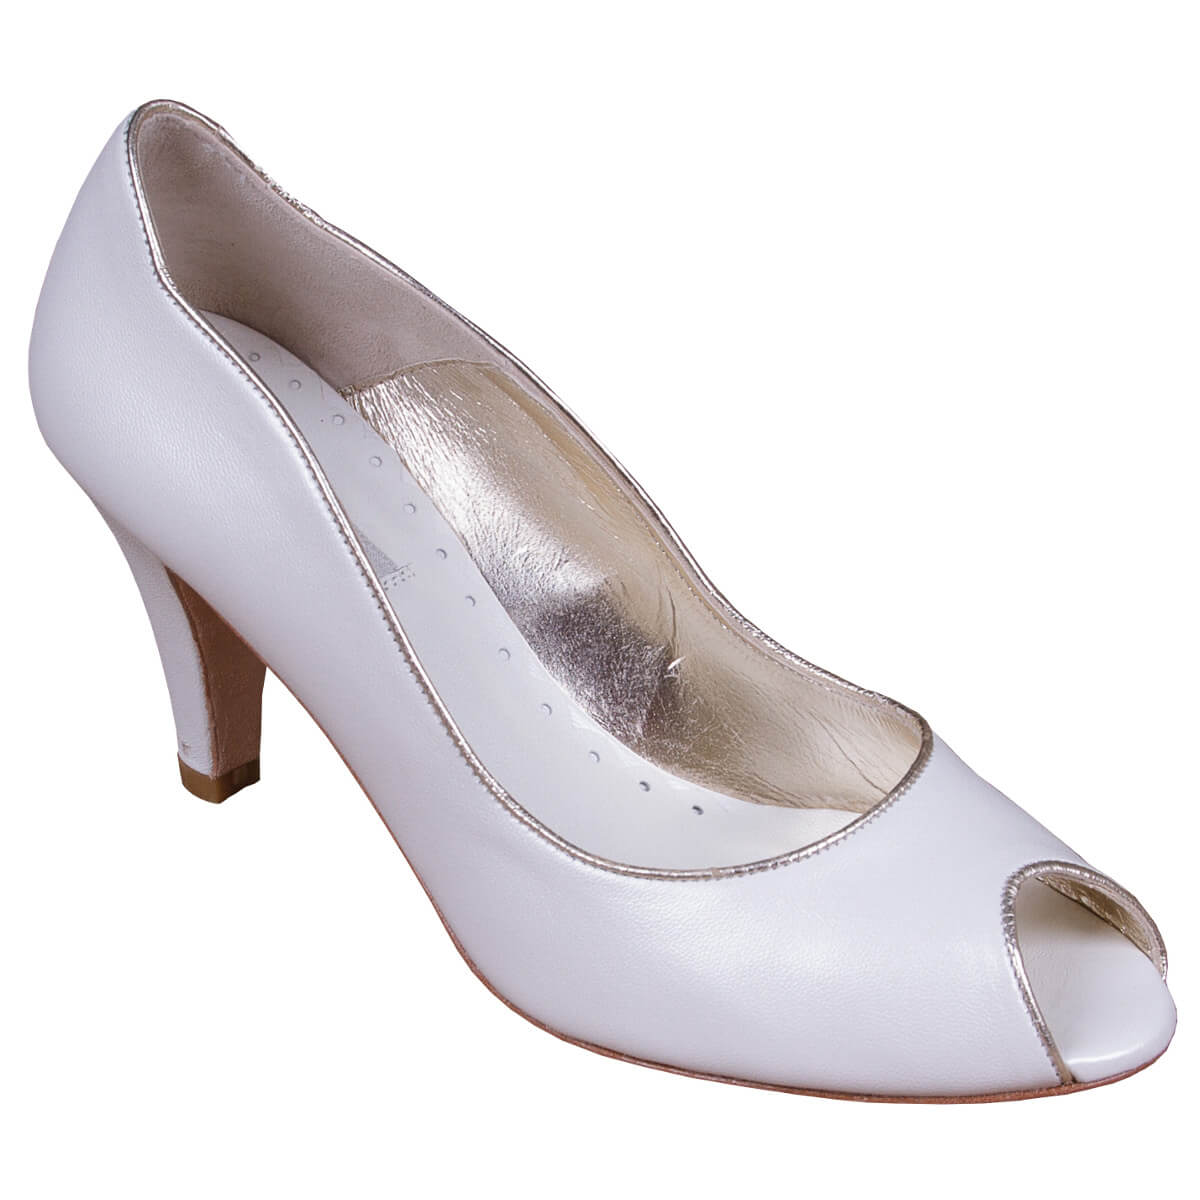 299bec96a52f Maria Gold - Wedding Shoes - The Perfect Bridal Company